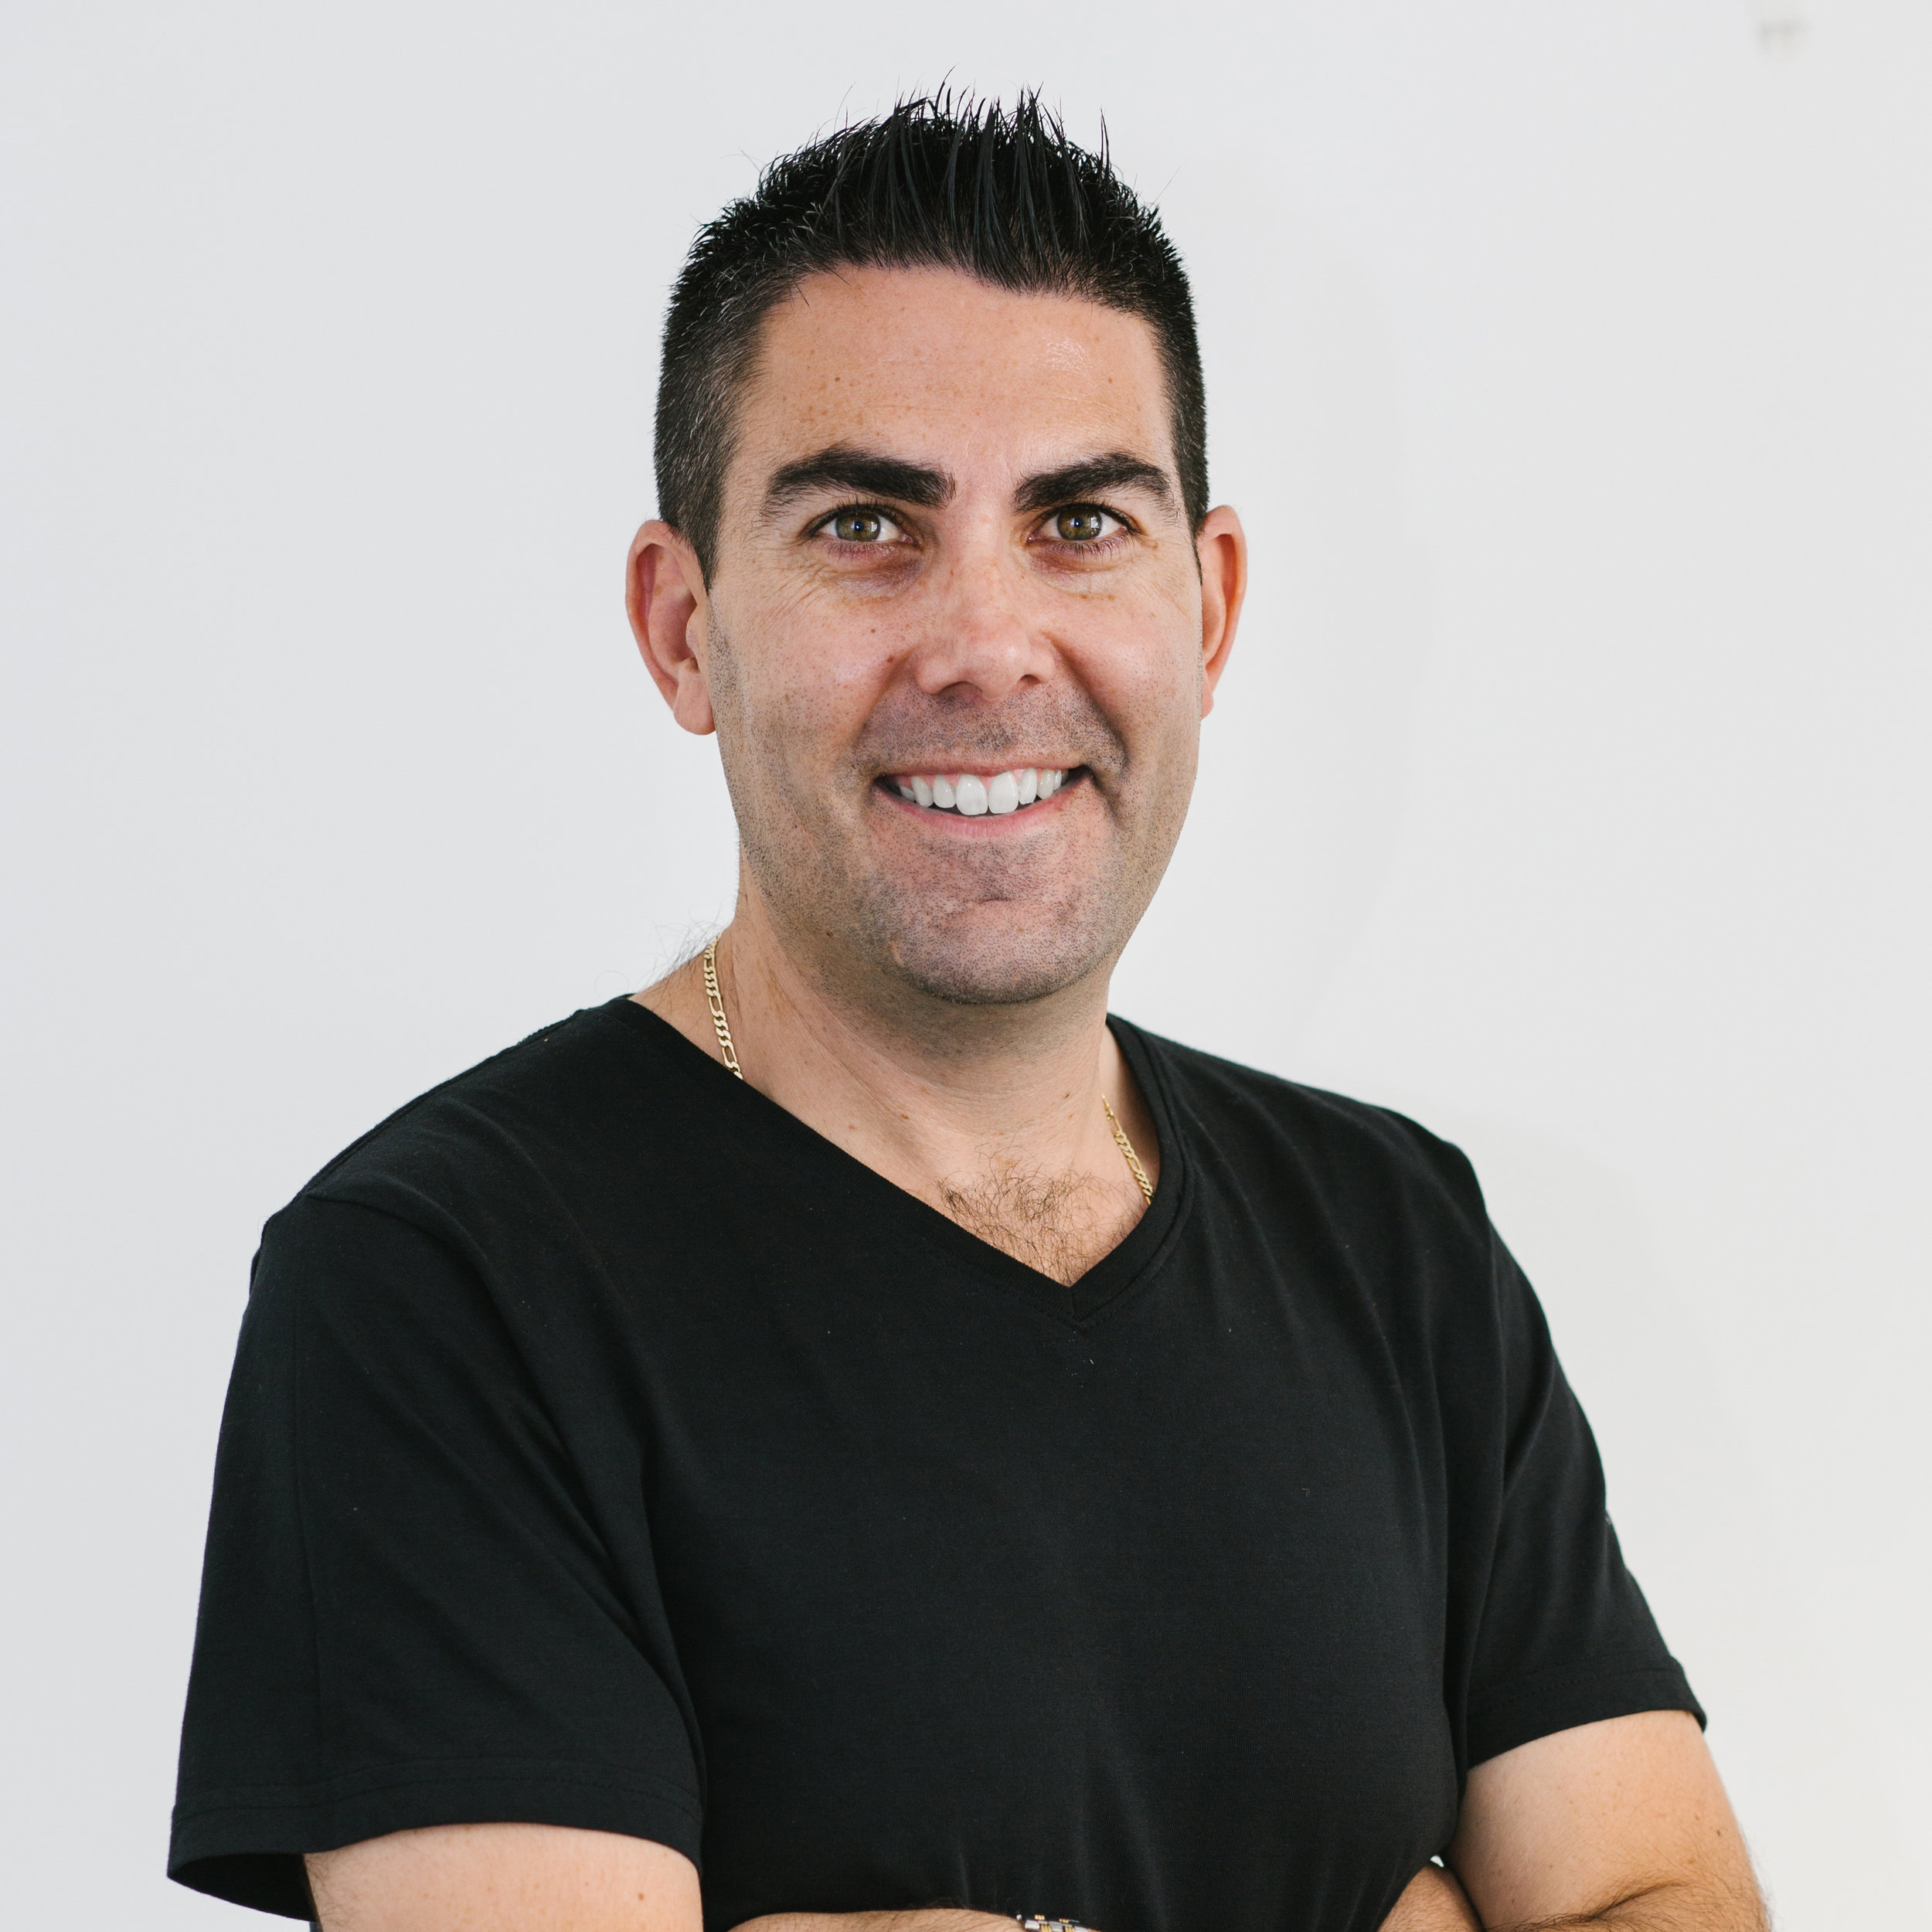 Michael Anastasiadis   Mortgage Adviser   Prior to joining Bozinoff Mortgages in 2017, Michael had 17 years at Inland Revenue in a variety of roles, including investigations, Compliance & Intelligence and more recently in leadership roles in the Business Analysis and Project Management professions.  Phone: 04 934 1832 Mobile: 021 757 269 Email:  michael@bml.net.nz   Disclosure Statement Michael Anastasiadis